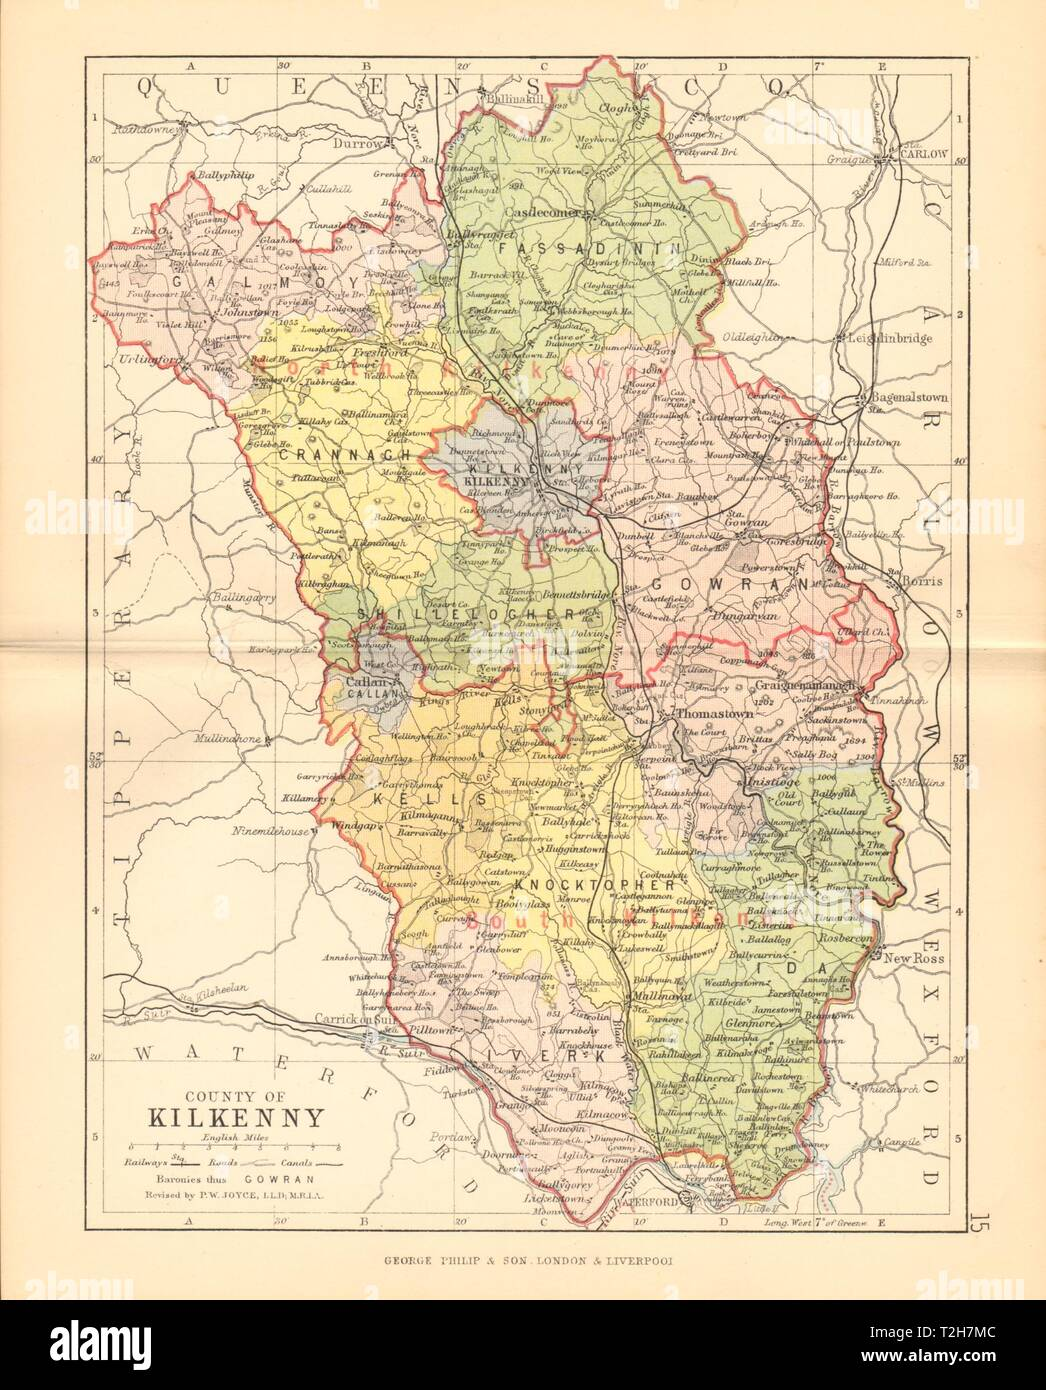 Map Of Ireland Leinster.County Kilkenny Antique County Map Leinster Ireland Bartholomew